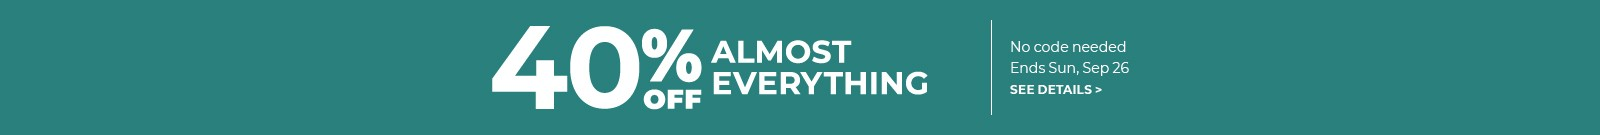 40% off almost everything, no code needed, Ends Sun, Sep 26, see details